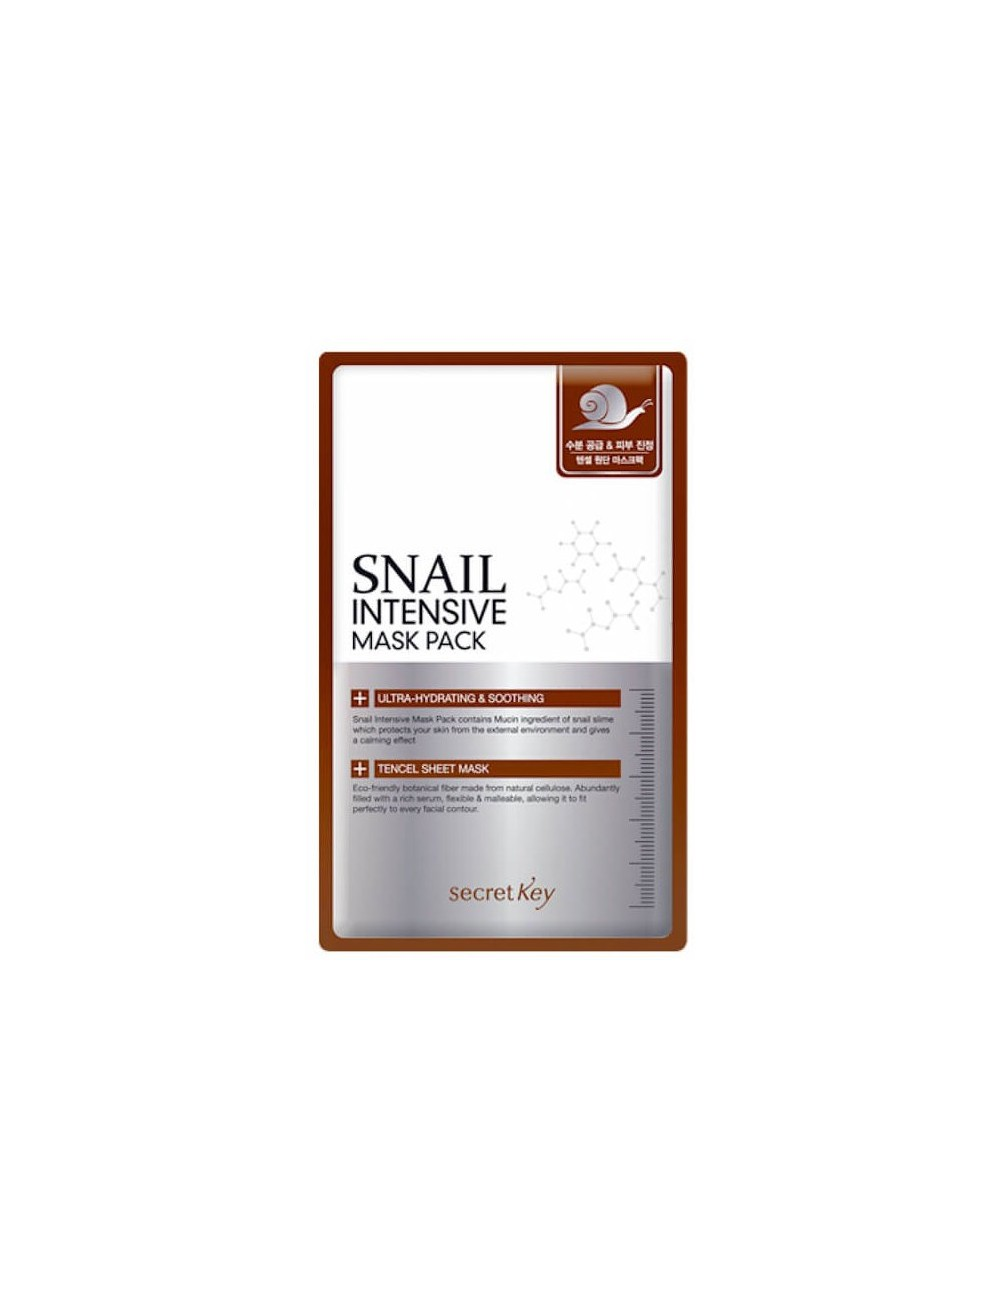 Mascarilla Hidratante y Calmante Secret Key Snail Intensive Mask Pack